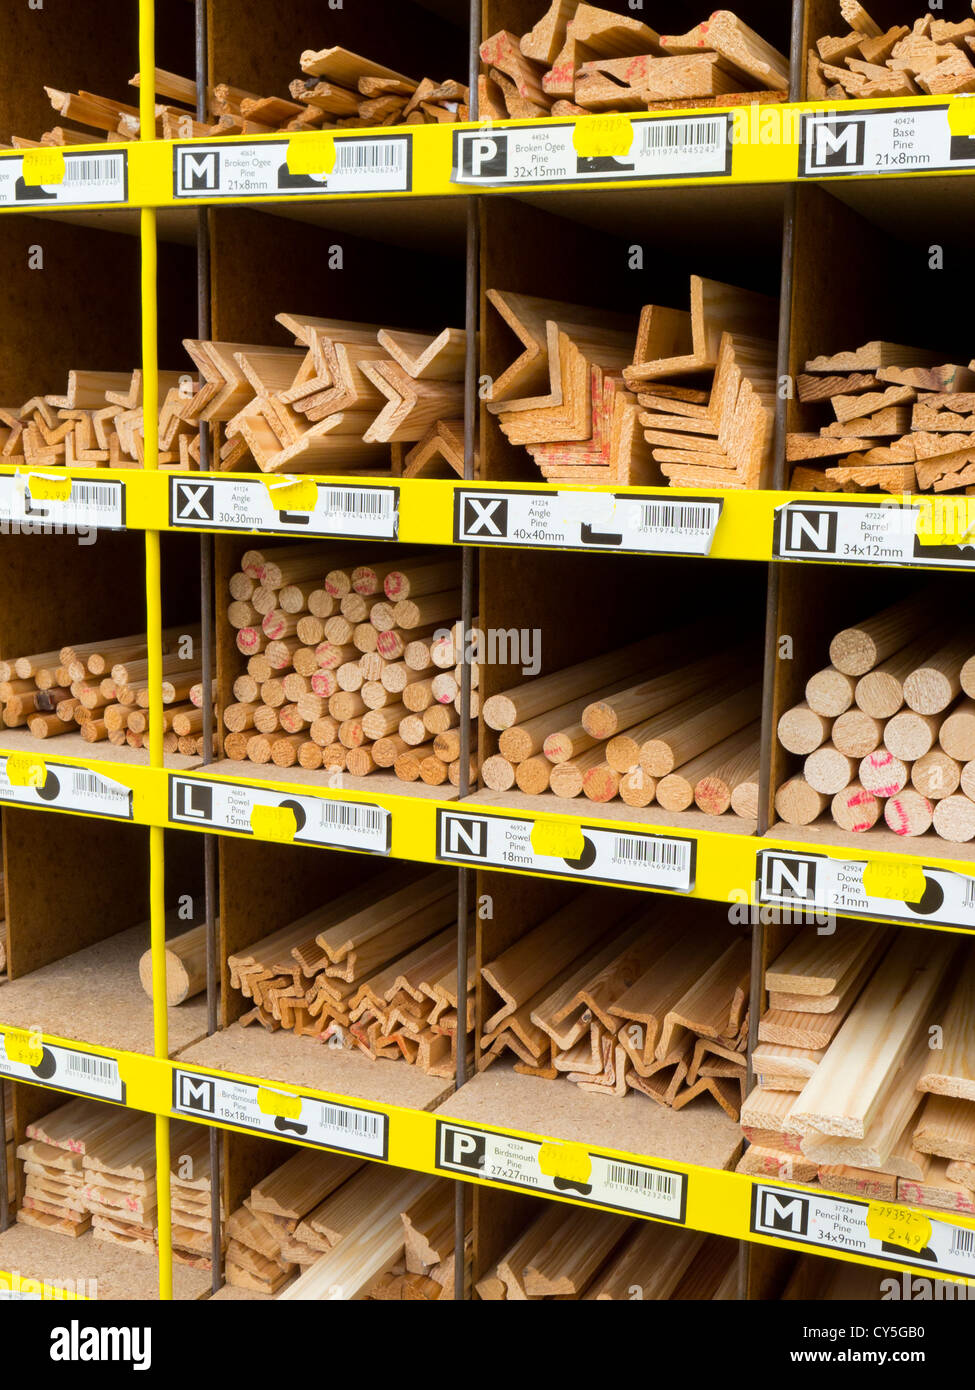 Timber dowel and edging products. - Stock Image